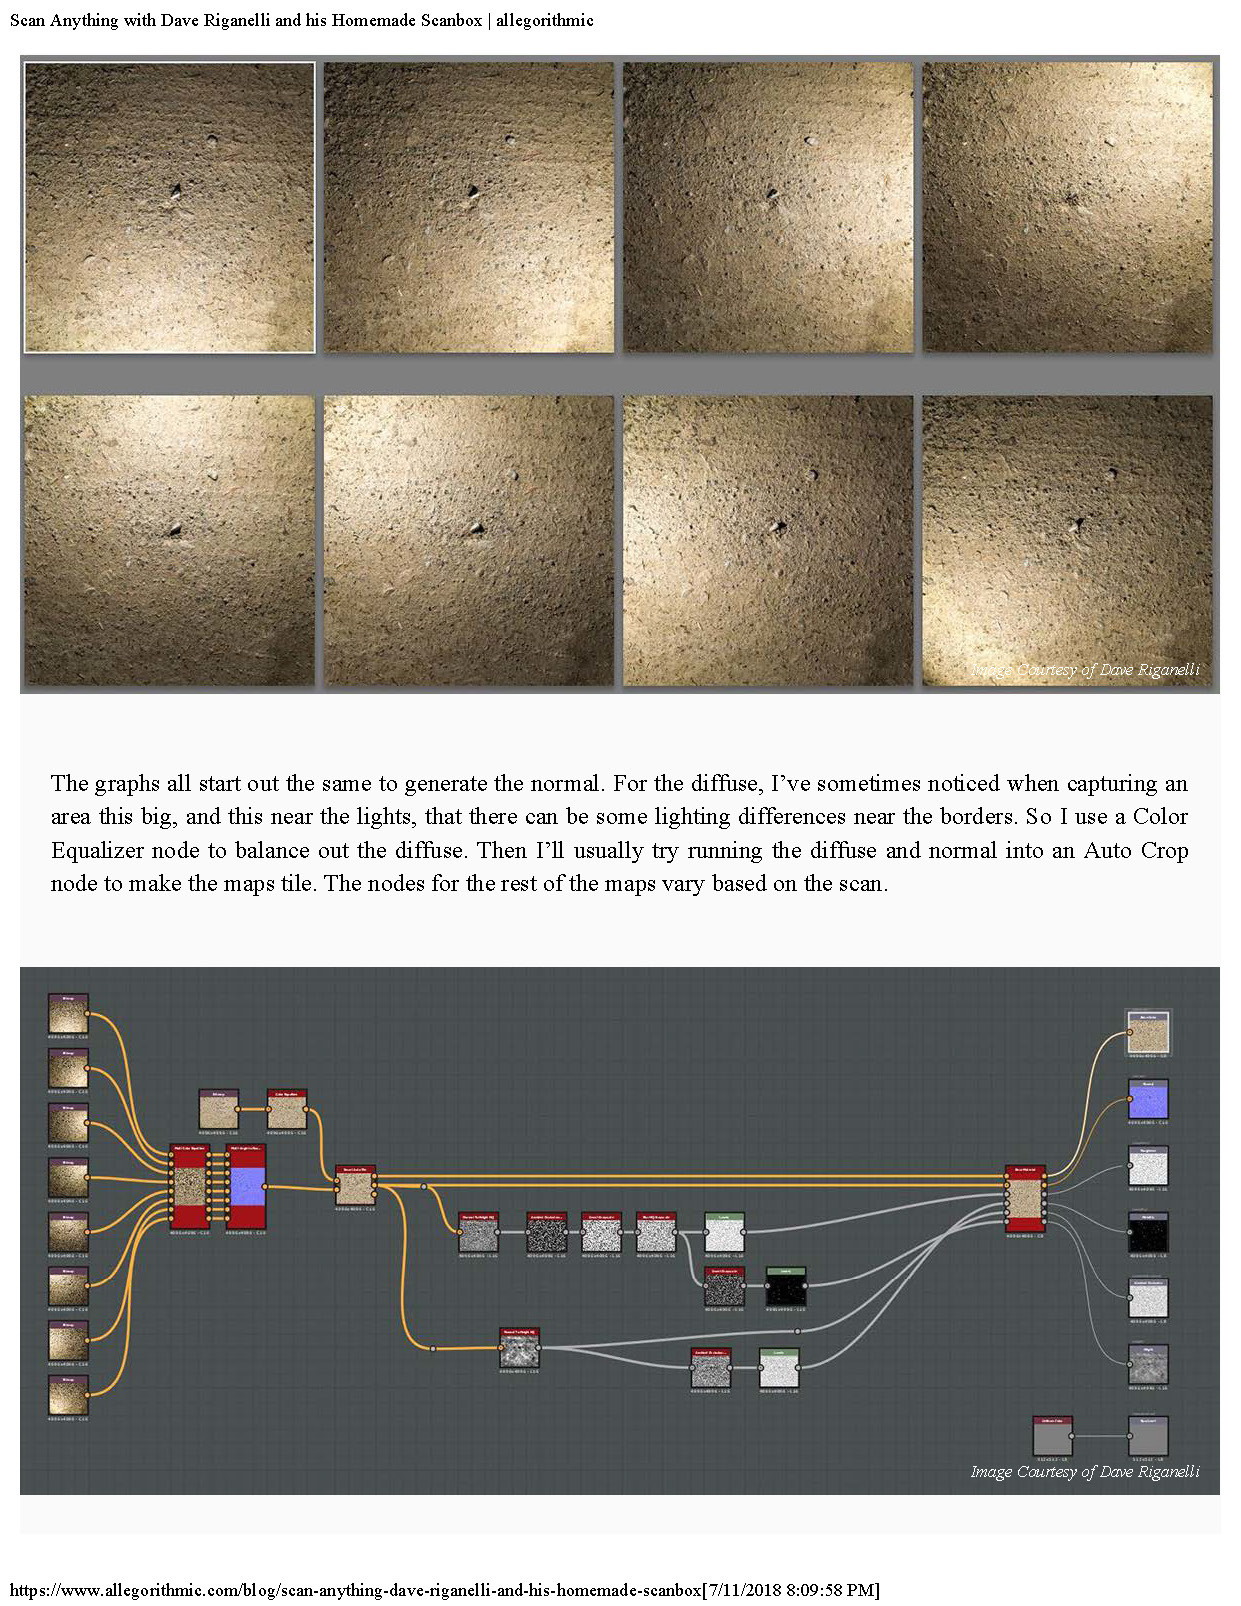 Dave riganelli scan anything with dave riganelli and his homemade scanbox allegorithmic page 15